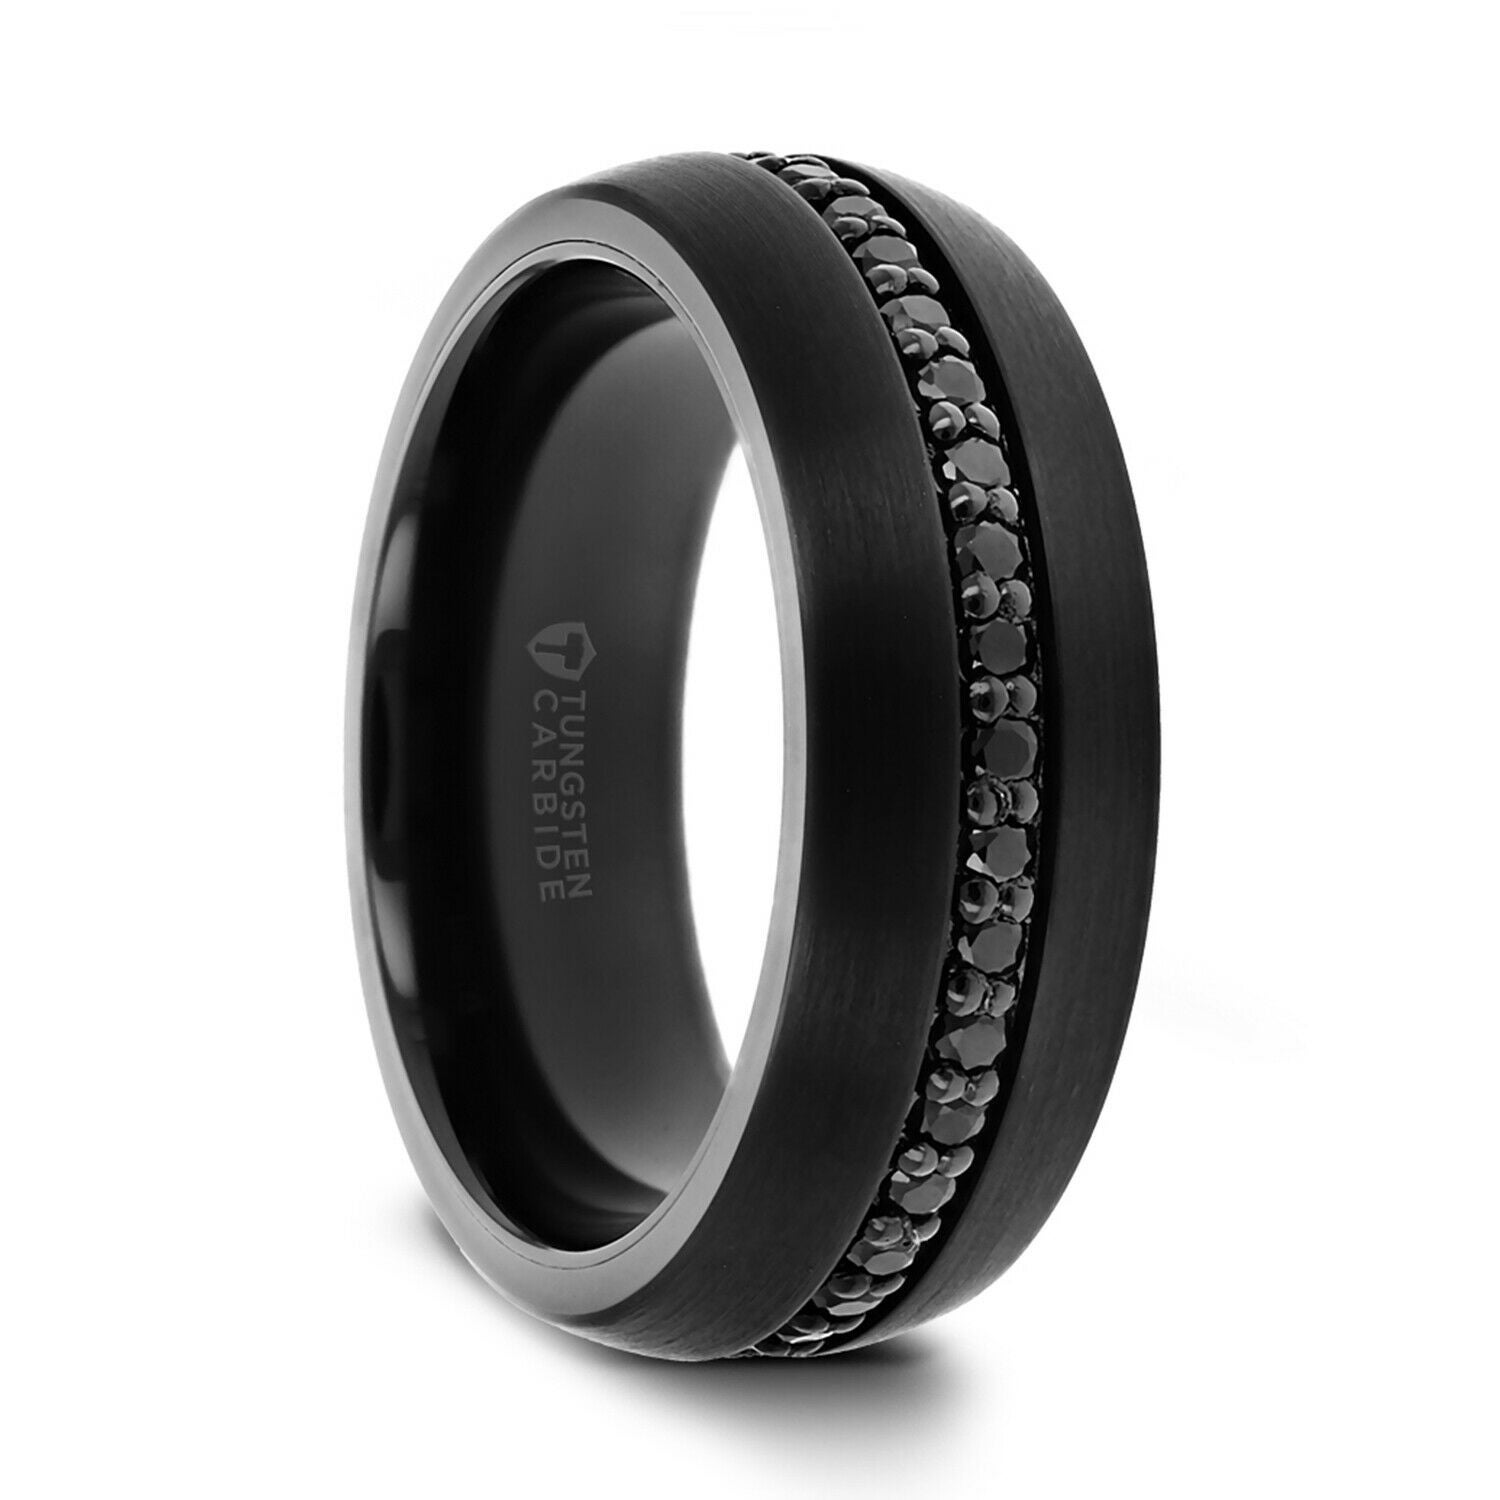 Thorsten Valiant  Tungsten Rings for Men  Black Tungsten  Comfort Fit   Wedding Ring Band with Black Sapphires - 10mm